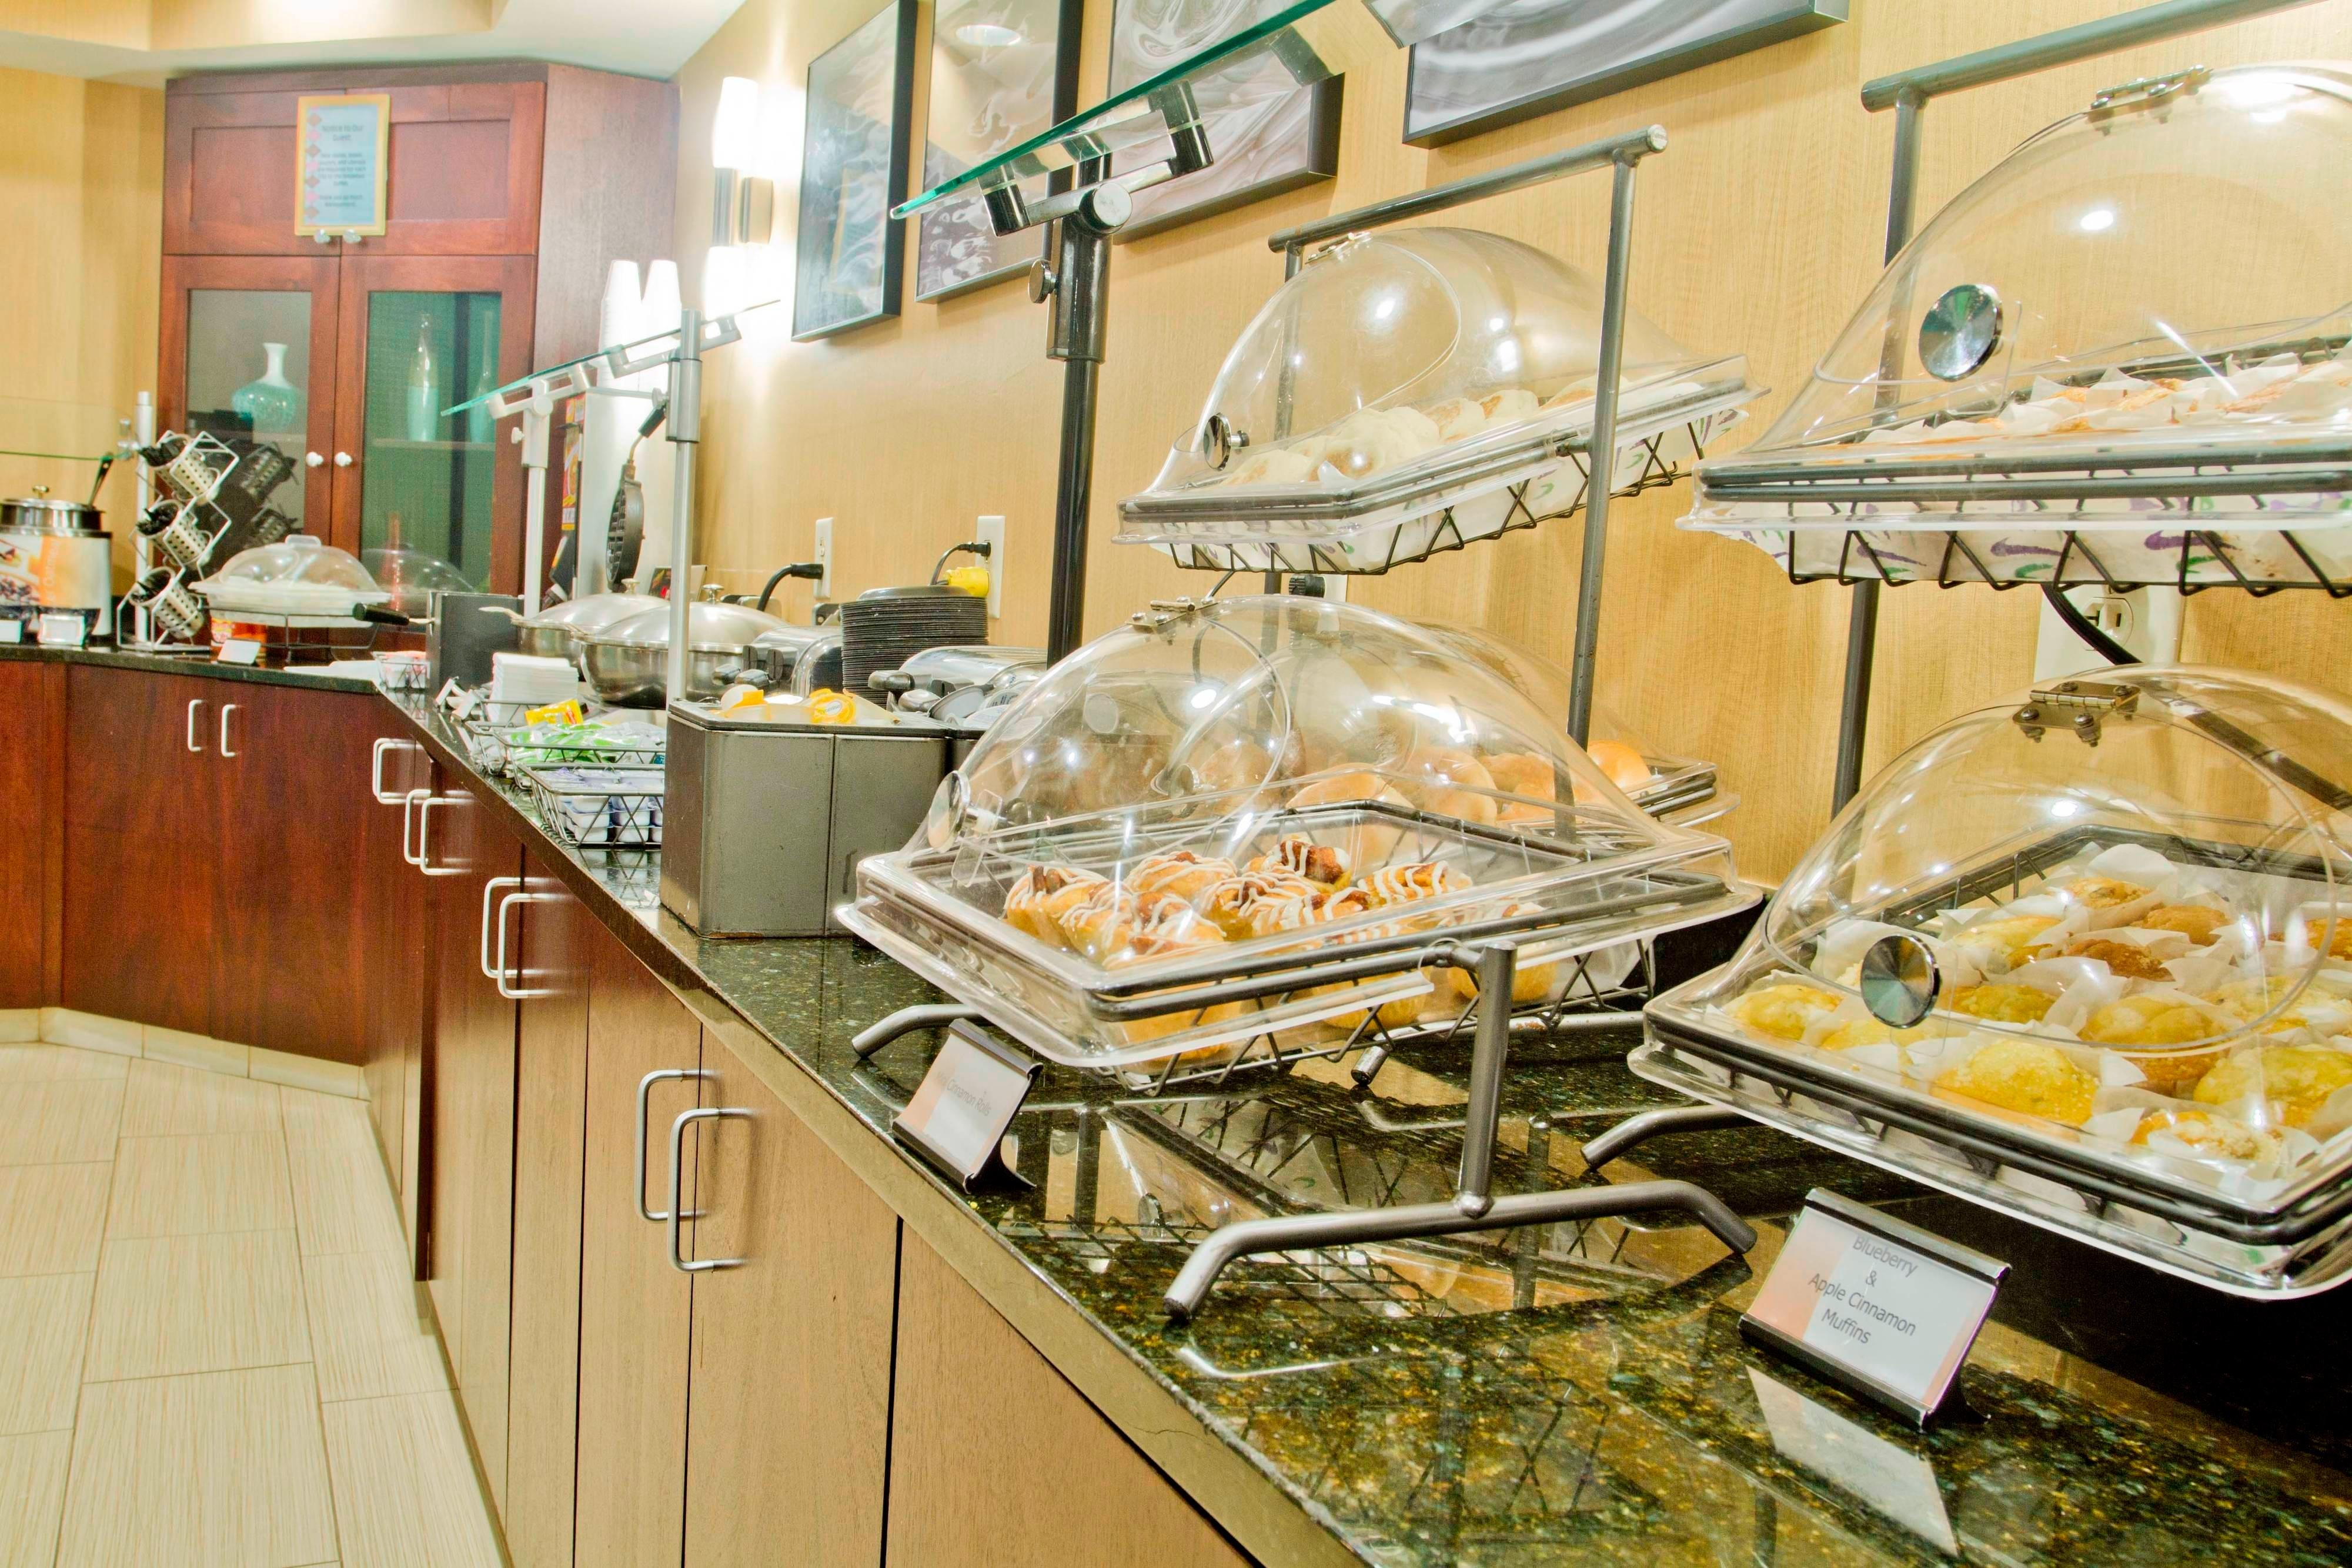 SpringHill Suites Charlotte Airport Complimentary Breakfast Buffet